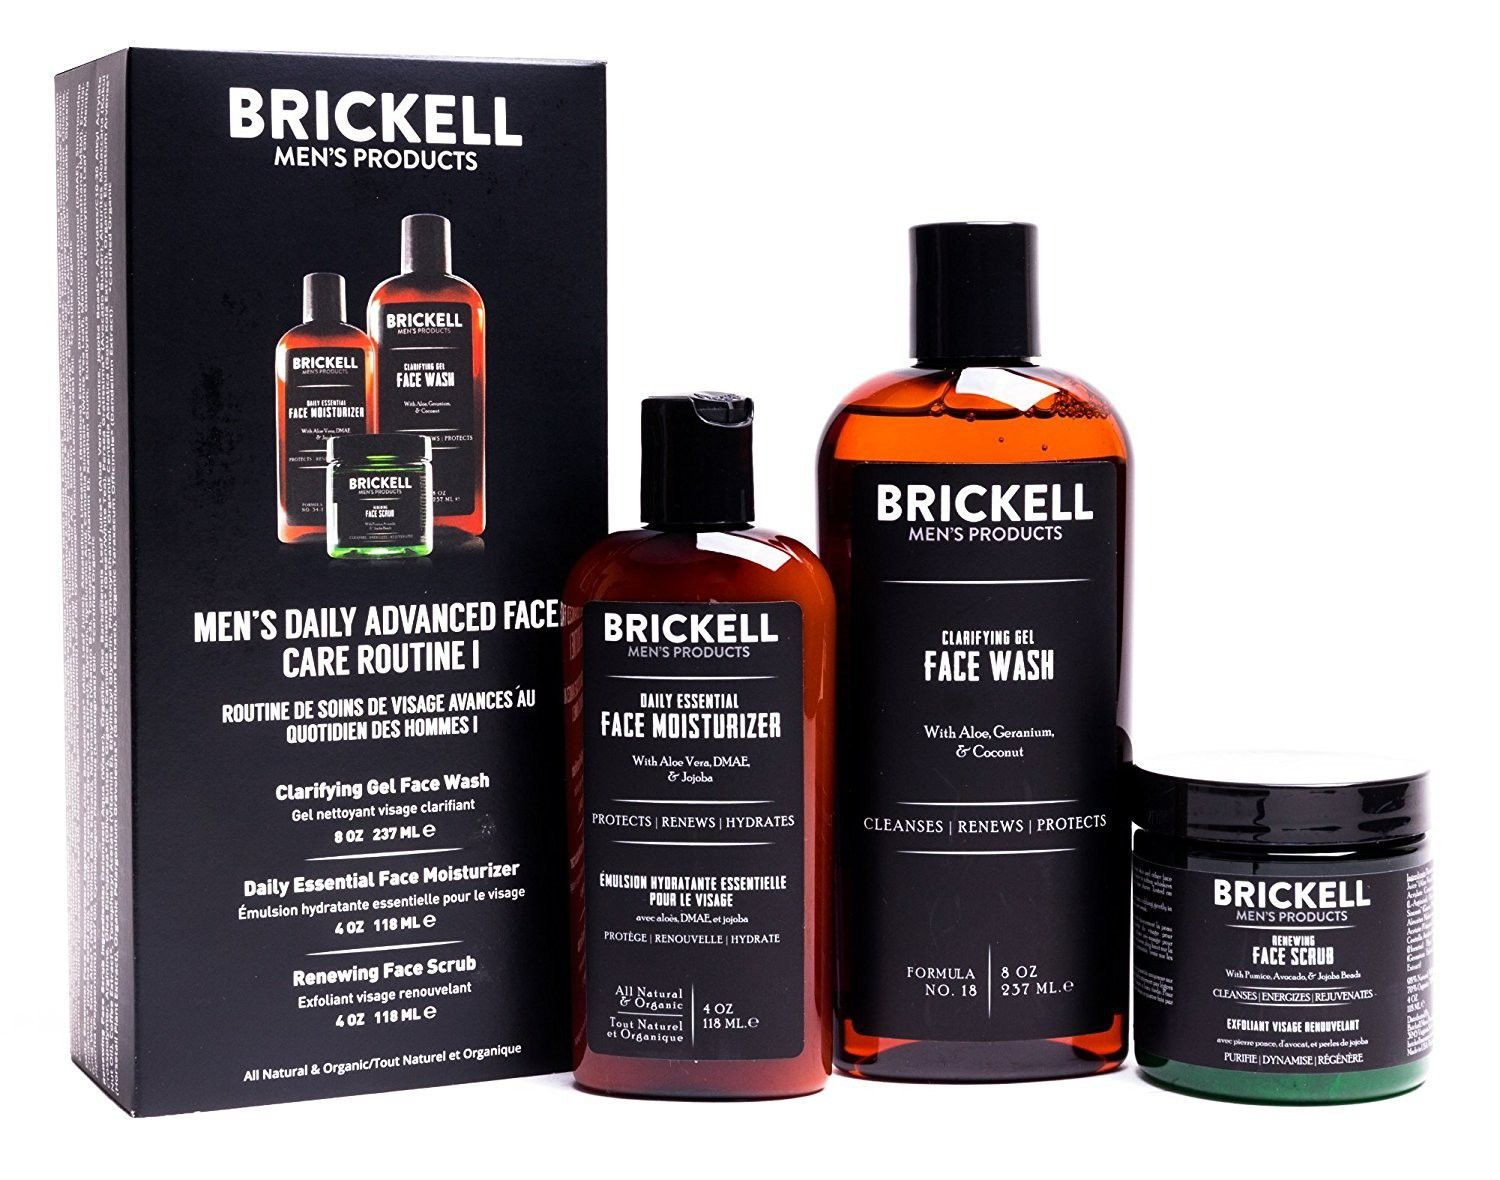 Brickell Men S Daily Advanced Face Care Routine I Gel Facial Cleanser Wash Face Scrub Face Moistu In 2020 Face Care Routine Gel Face Wash Face Care